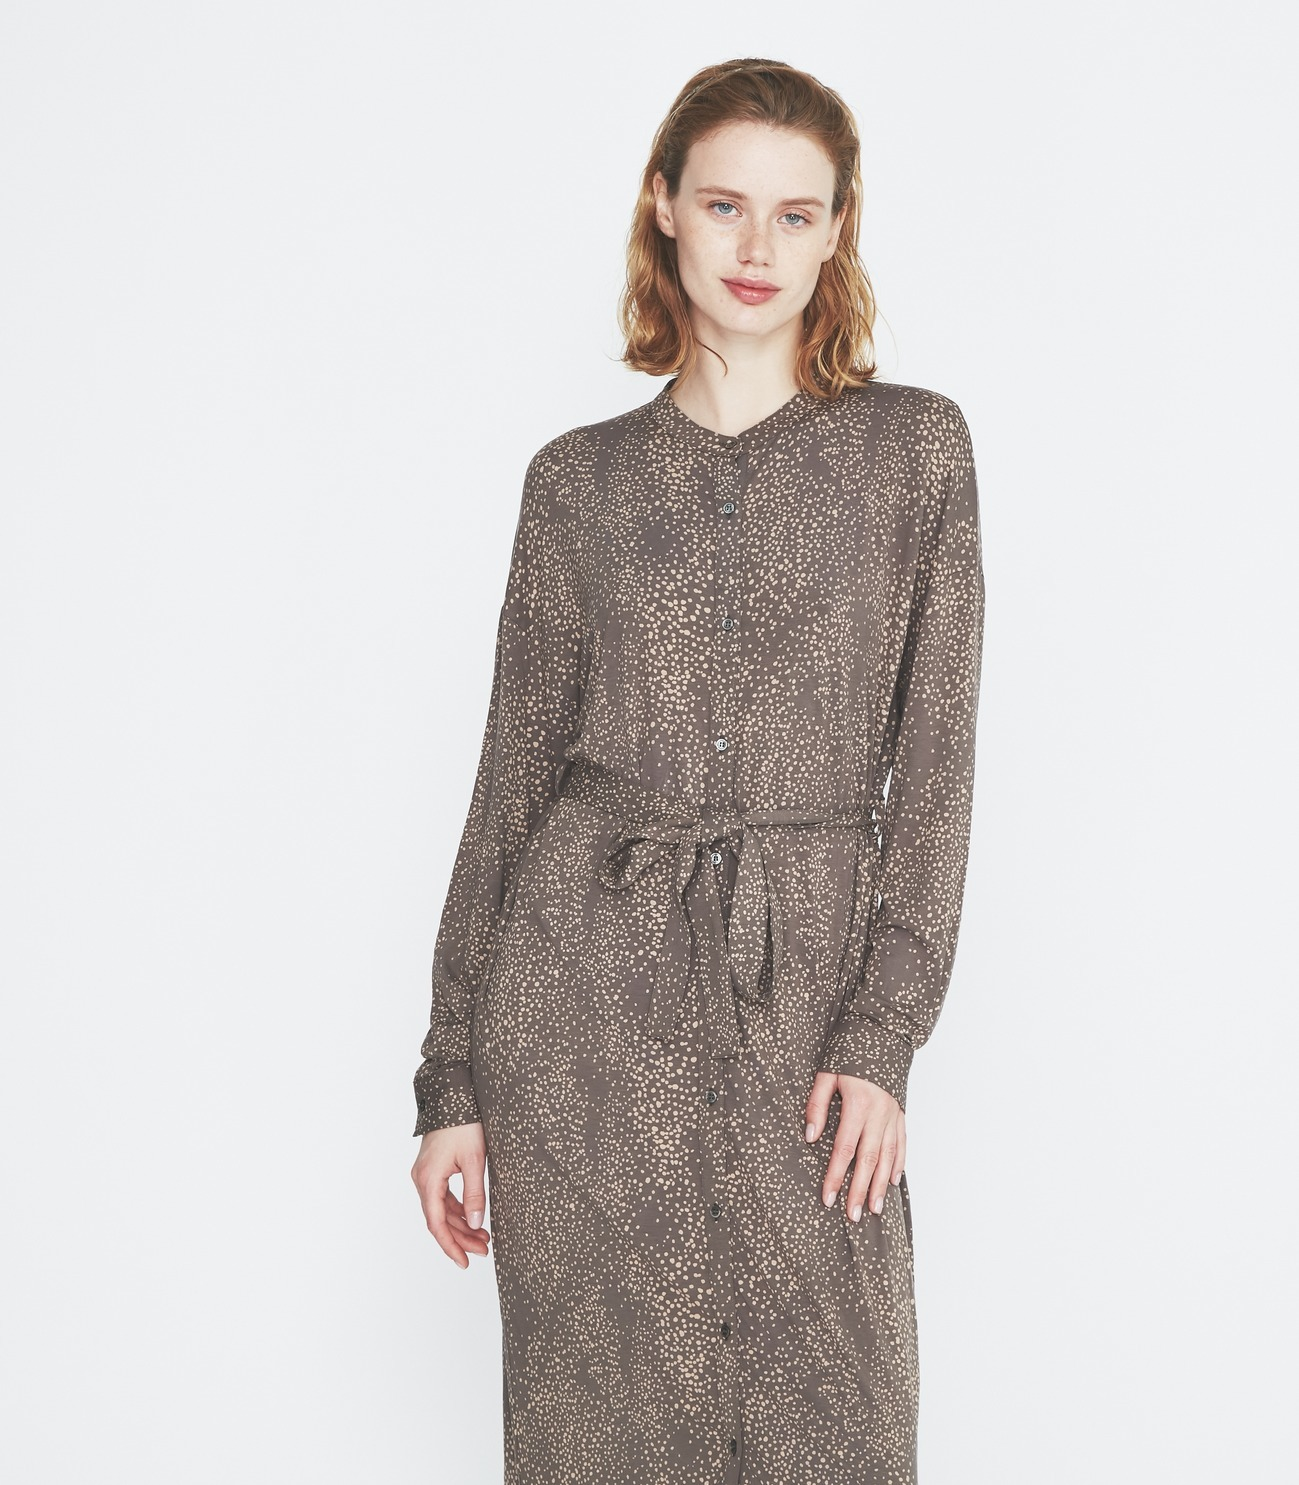 Dot print long shirt dress 詳細画像 soft brown multi 6